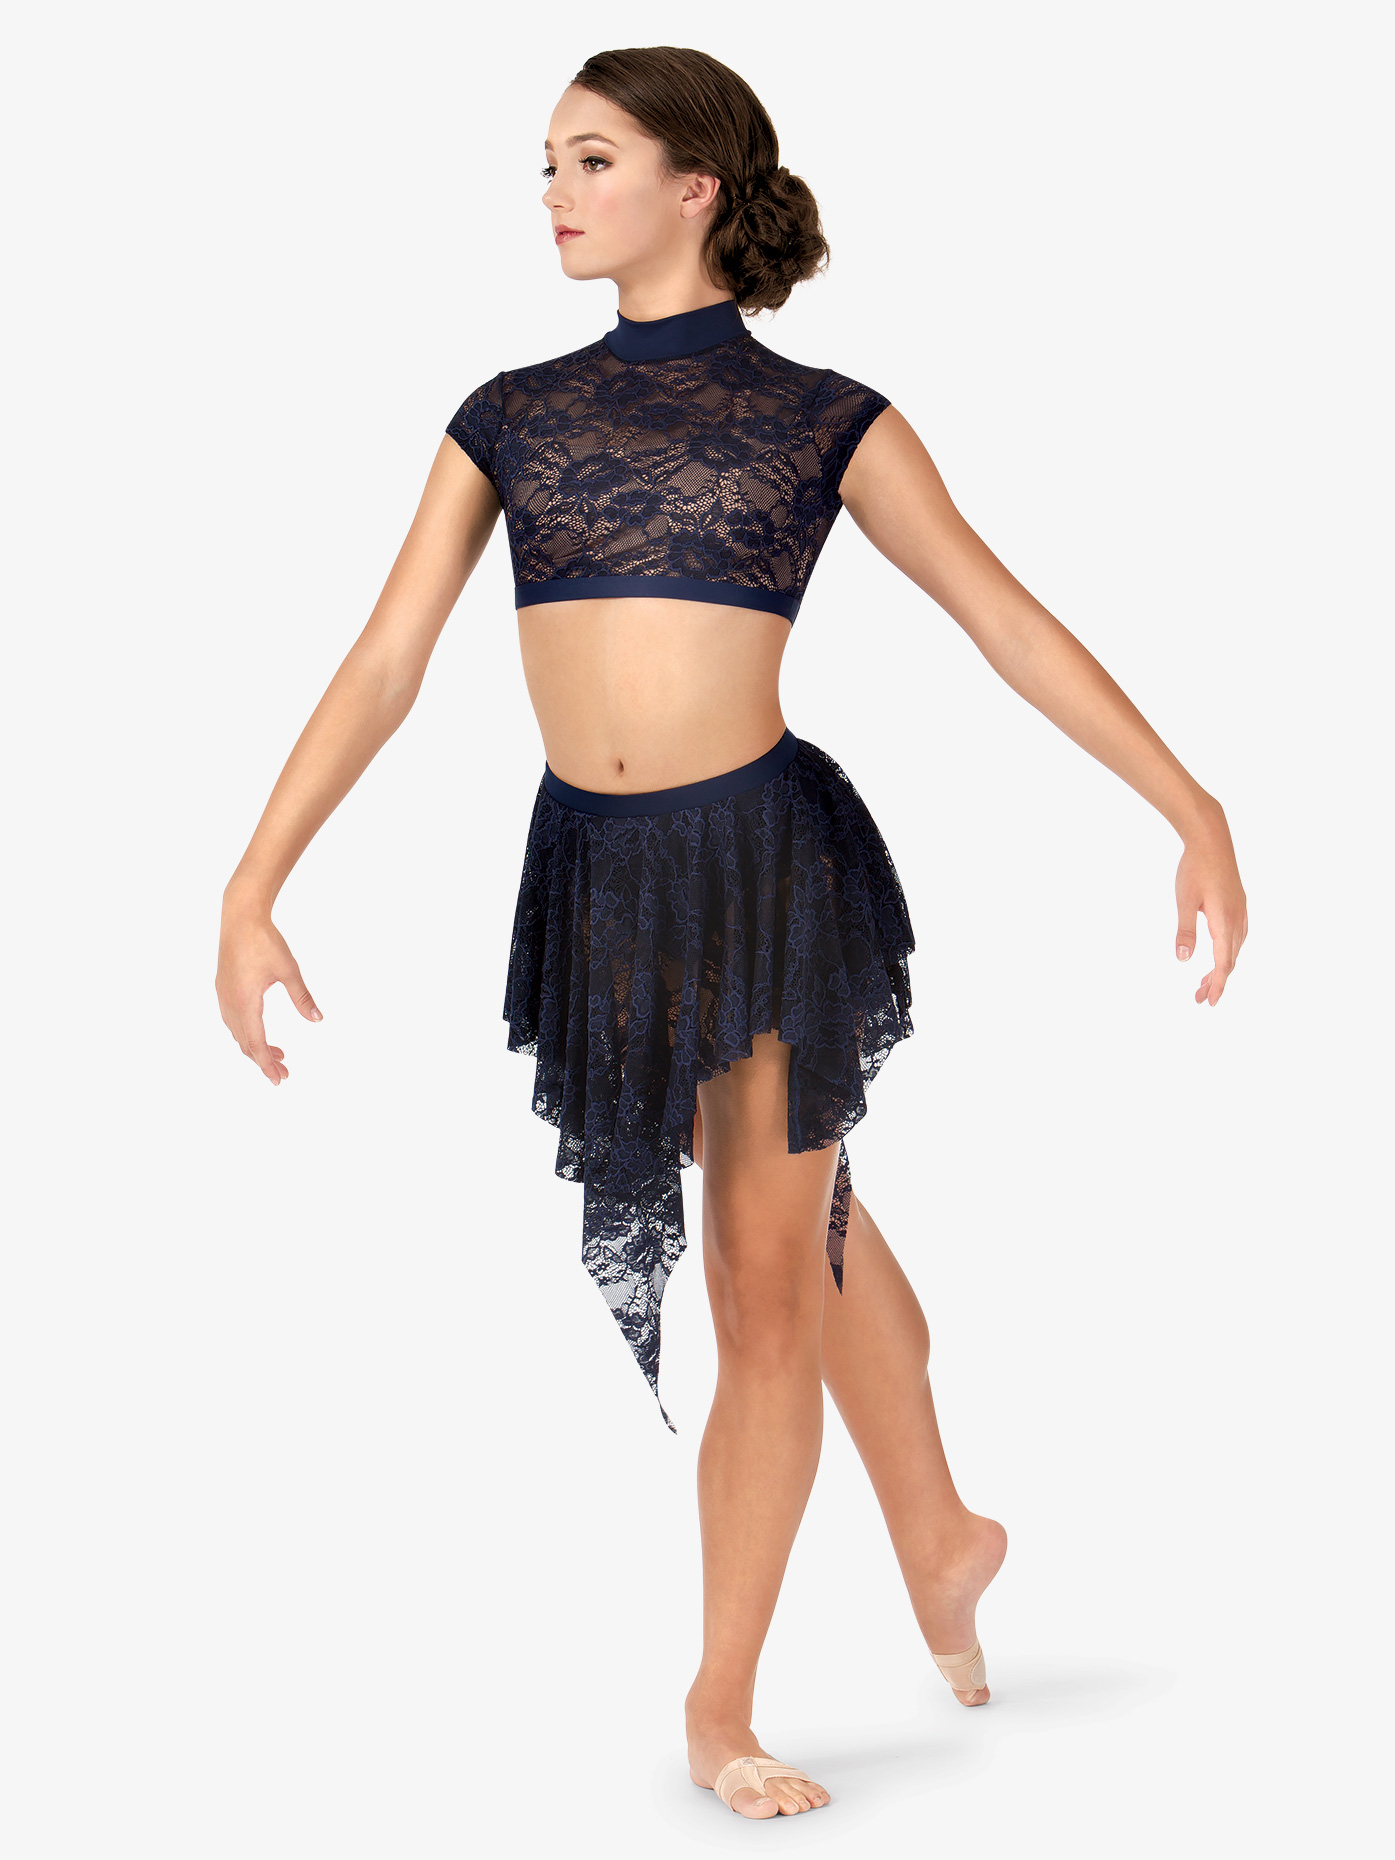 Body Wrappers Adult Uneven Hem Drapey Lace Dance Skirt LC9109